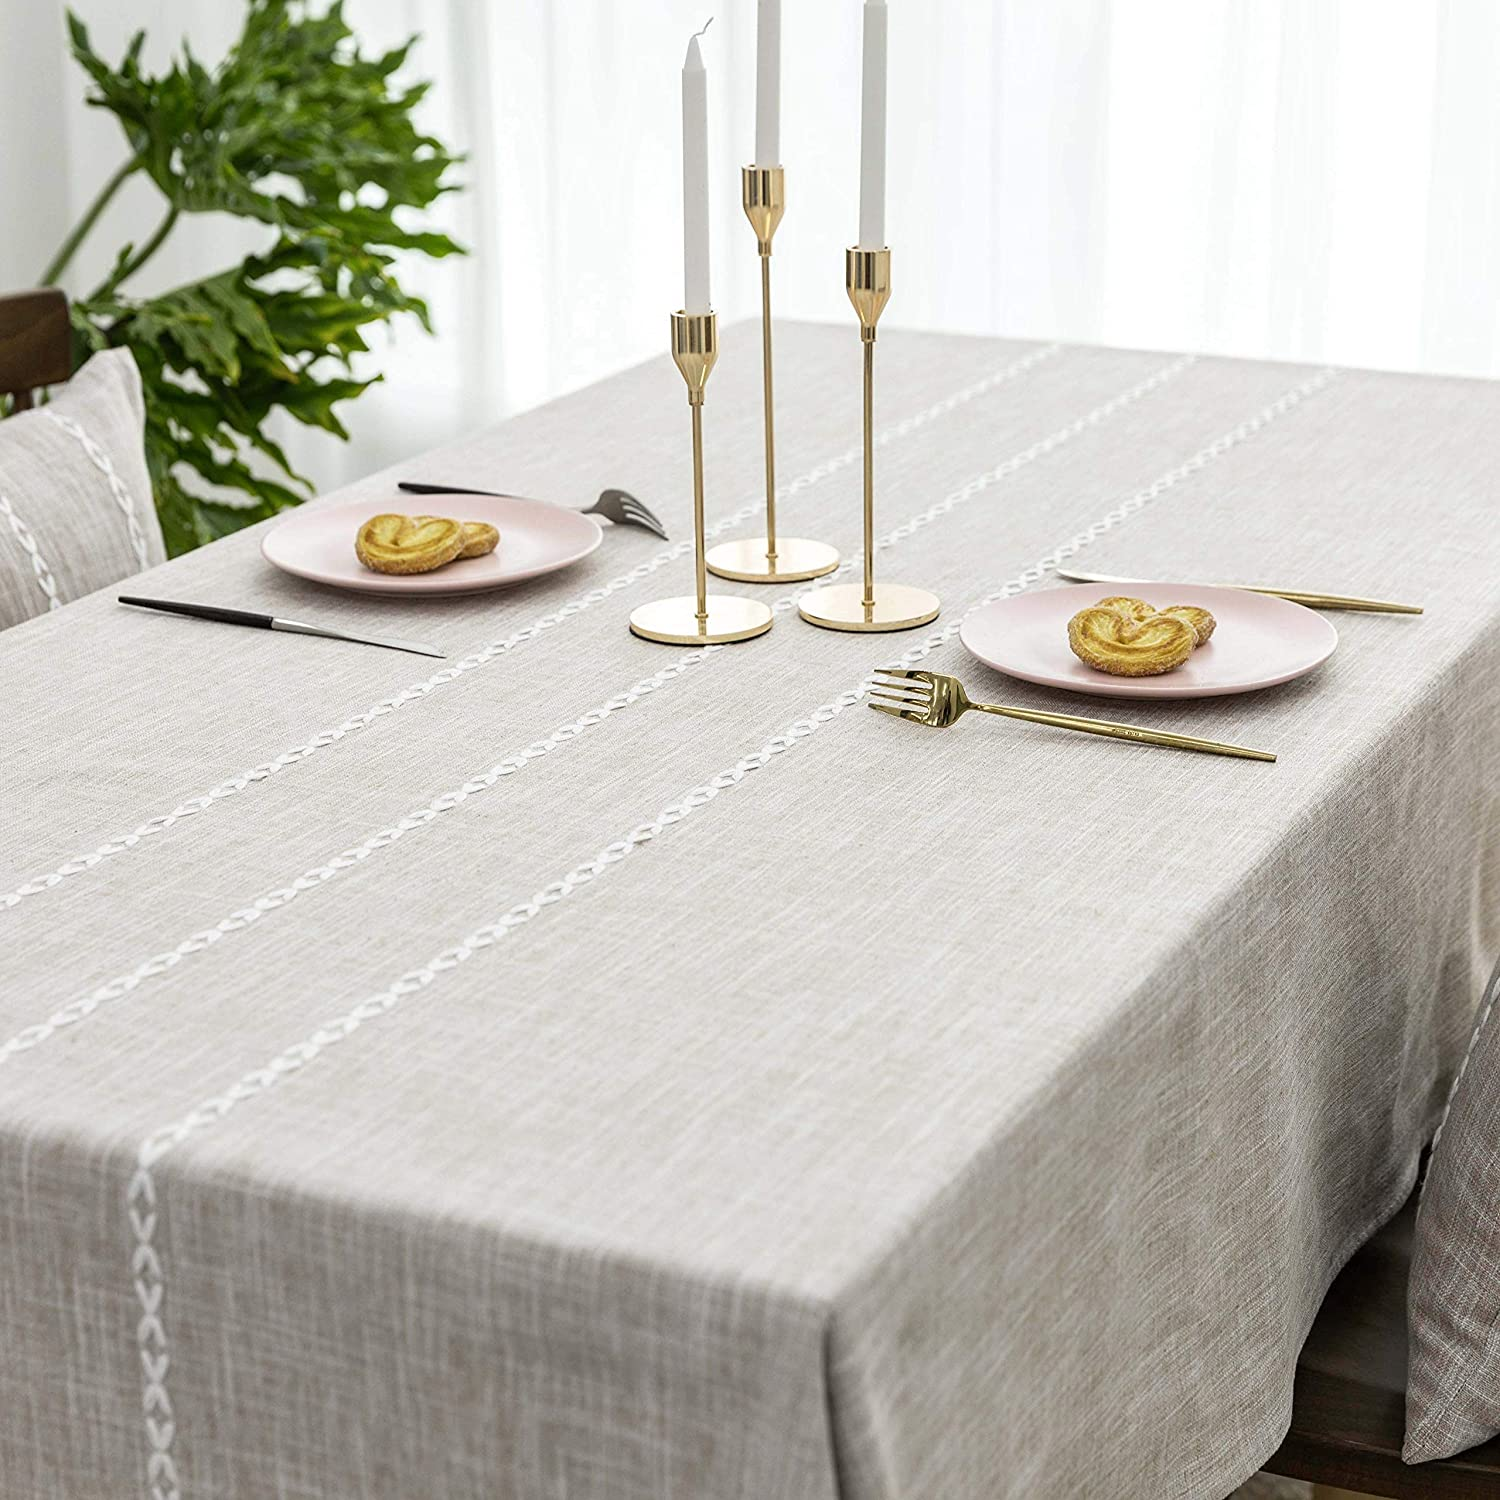 Home Brilliant Faux Burlap Tablecloth Rectangular Oblong Table Cover for Kitchen Dinning Striped Tabletop Decoration (52 x 72 Inch, Light Linen)